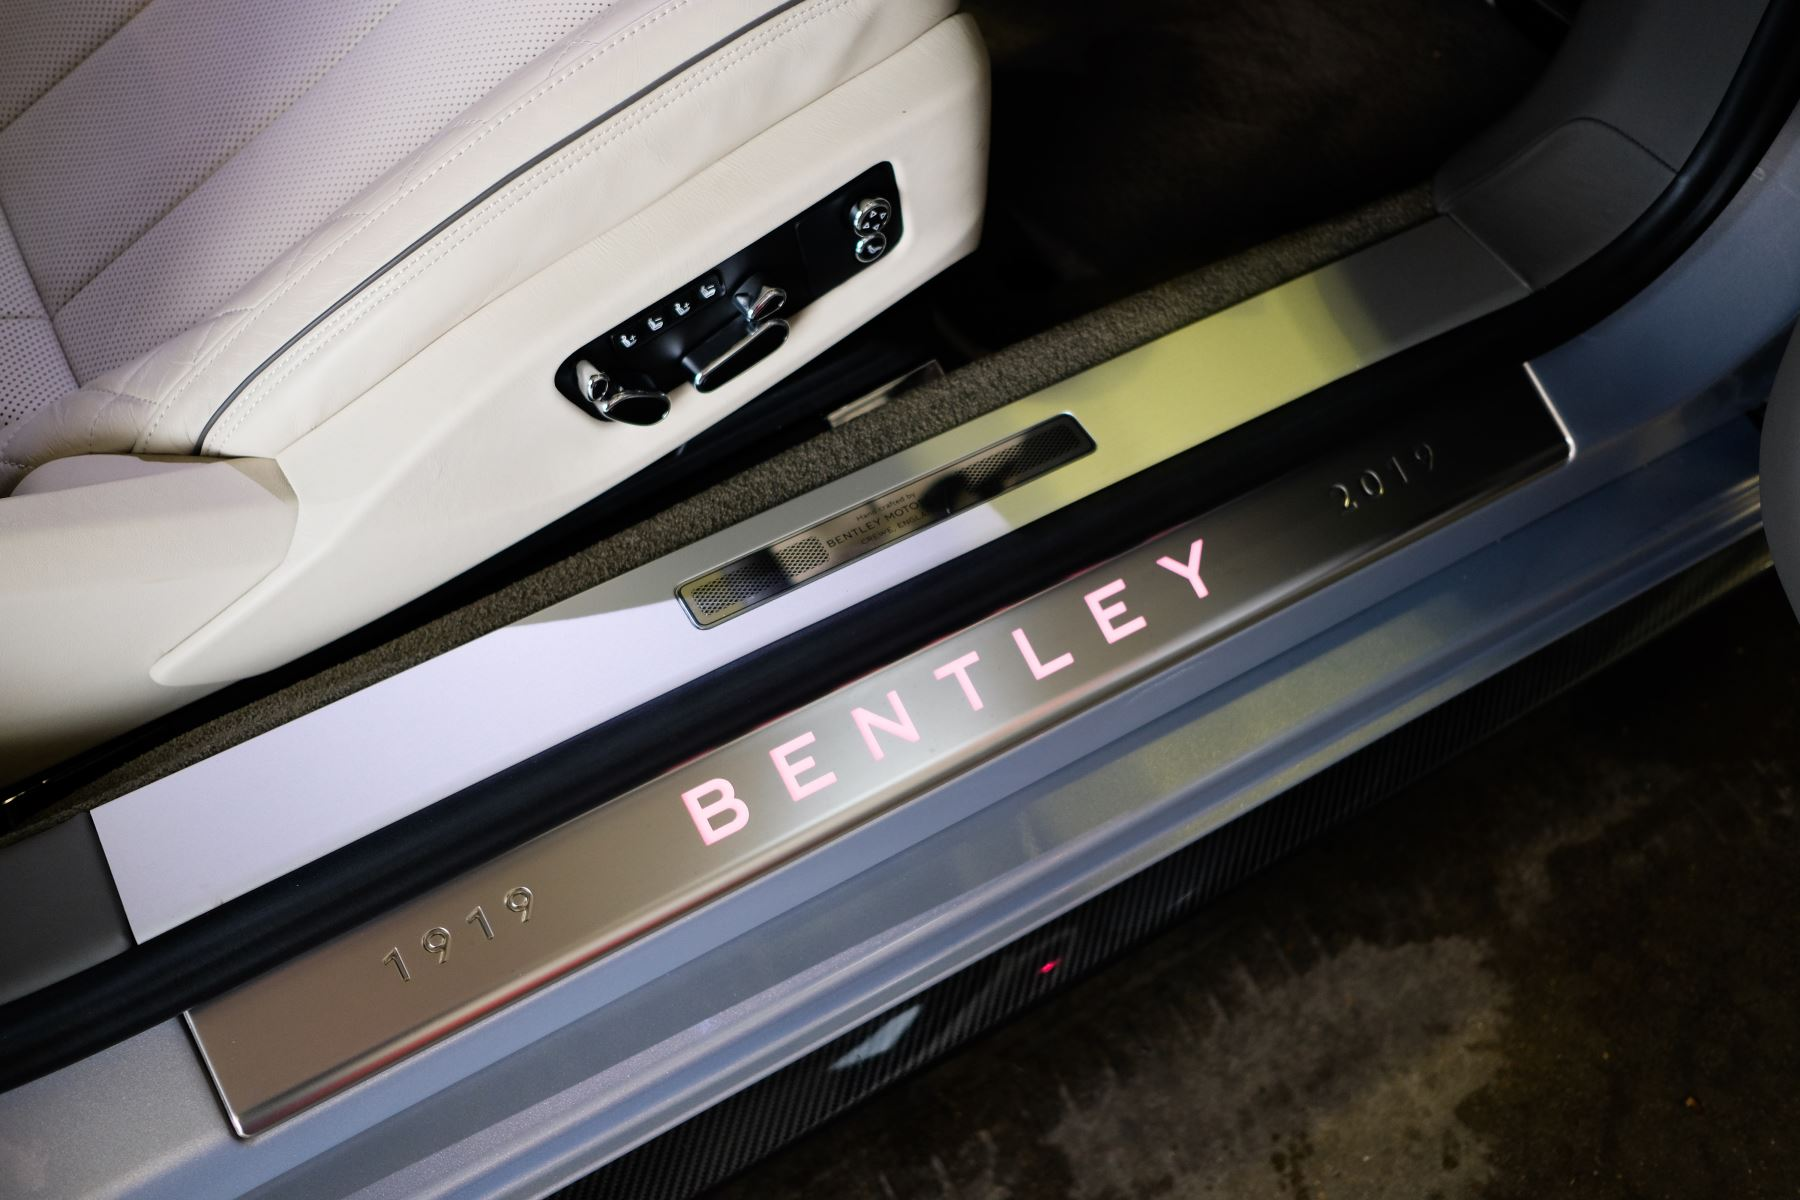 Bentley Continental GT 4.0 V8 - Mulliner Driving Specification with Black Painted Wheels - Touring and Centenary Spec image 35